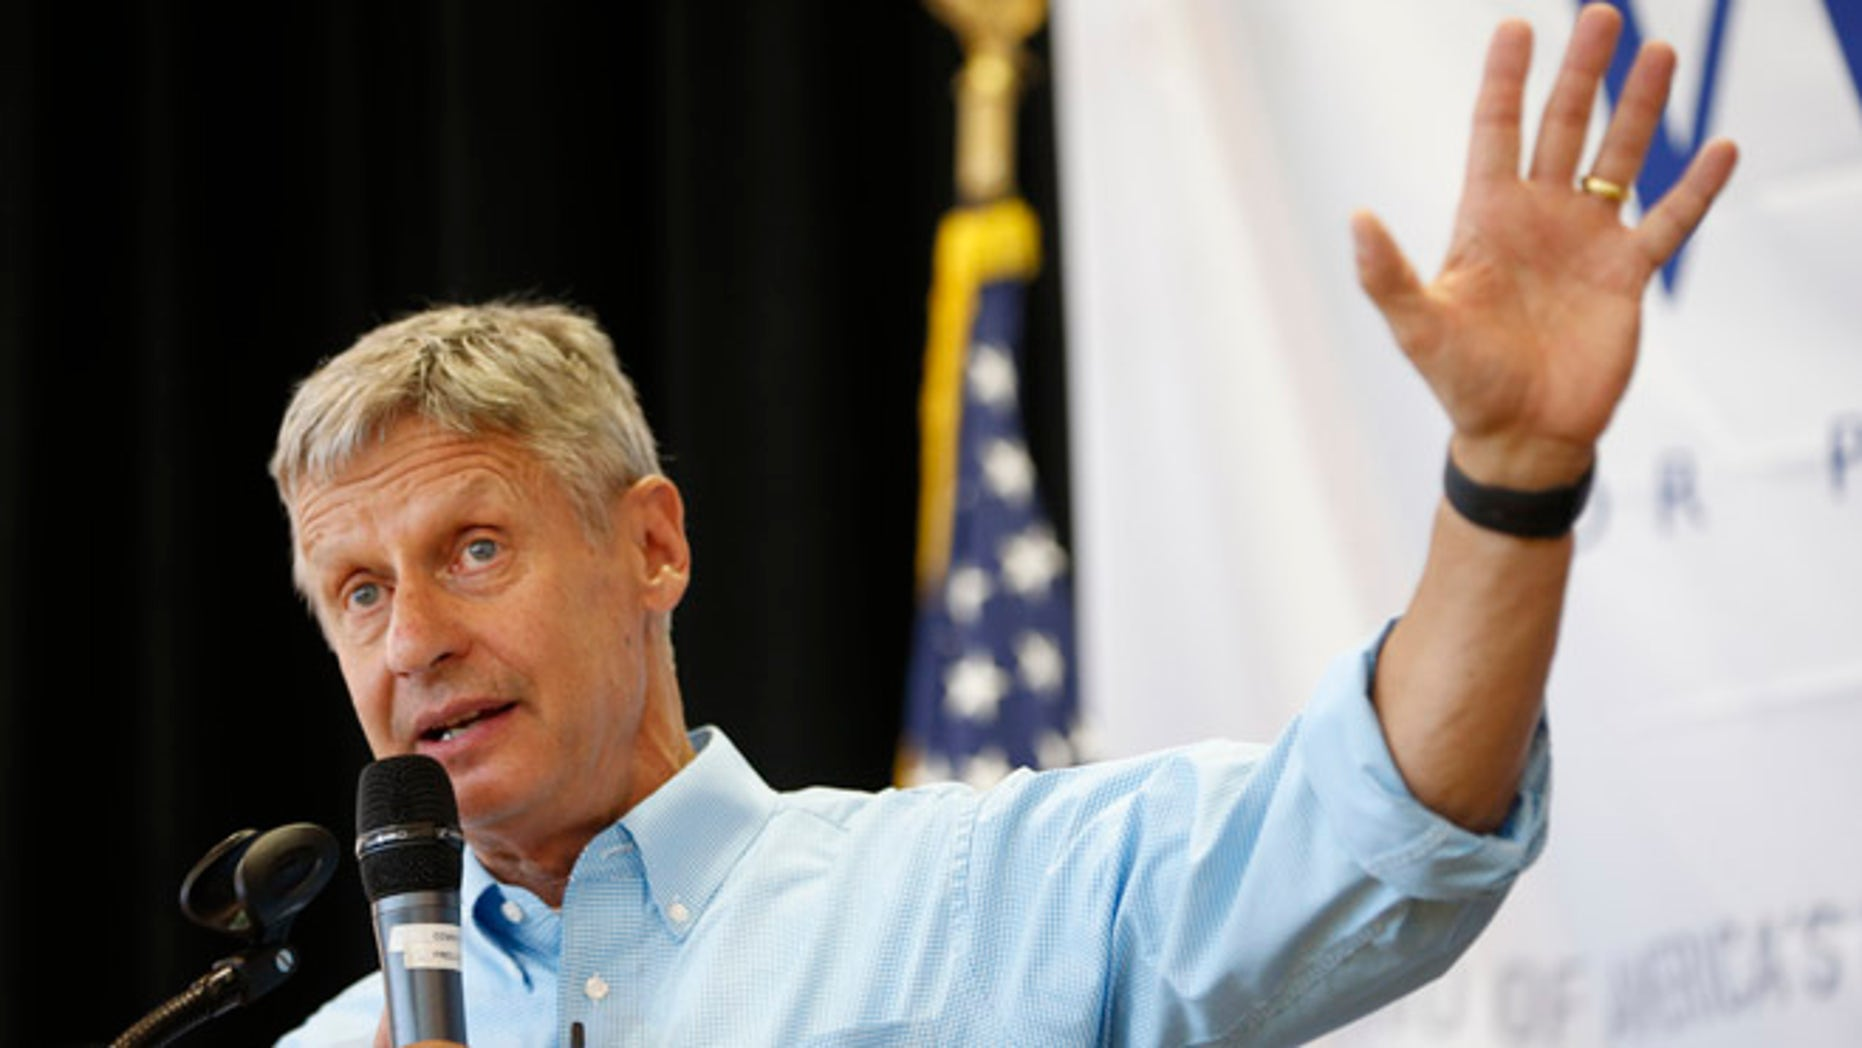 SALT LAKE CITY, UT - AUGUST 6: Libertarian presidential candidate Gary Johnson talks to a crowd of supporters at a rally on August 6, 2015 in Salt Lake City, Utah. Johnson has spent the day campaigning in Salt Lake City, the home town of former republican presidential candidate Mitt Romney.  (Photo by George Frey/Getty Images)